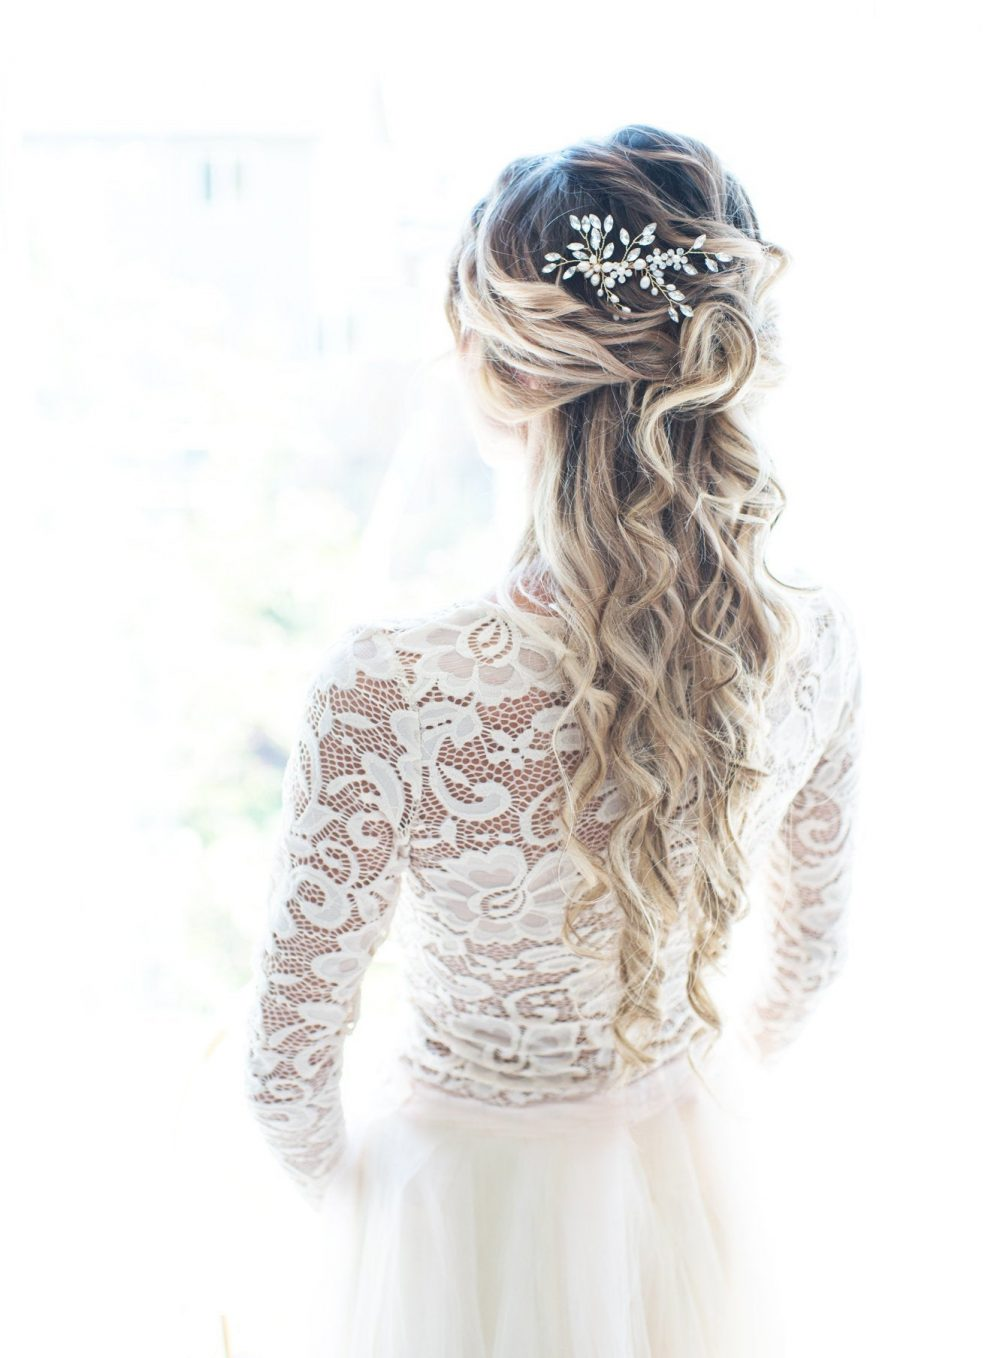 """Boho Wedding Hair Accessory Comb With Pearls & Marquise Crystals, Beach Rustic Country in Gold Or Silver """"Sadie"""""""